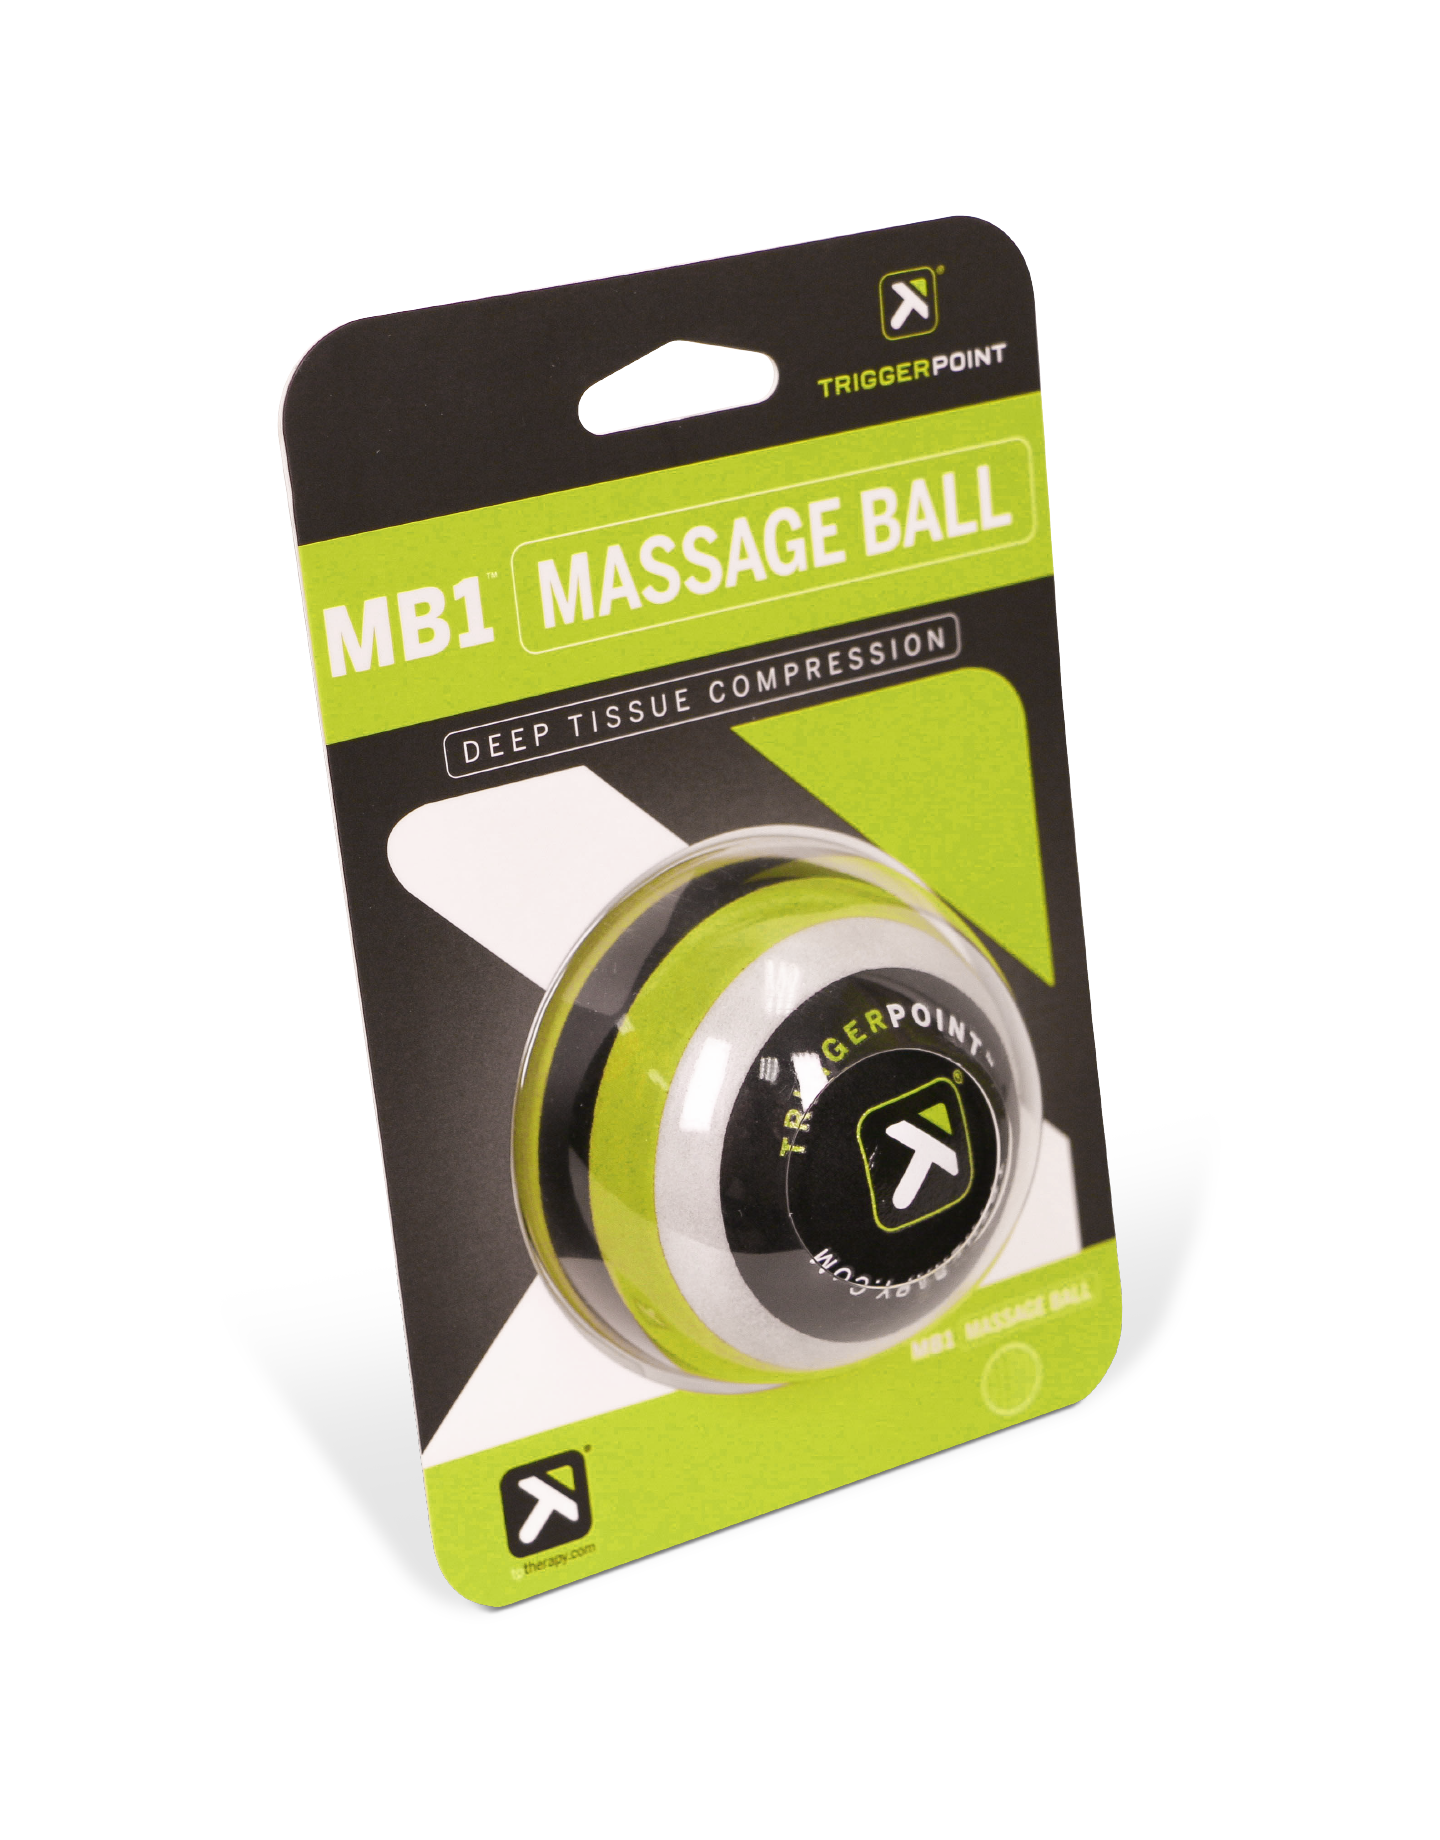 TriggerPoint TriggerPoint MB1 Massage Ball